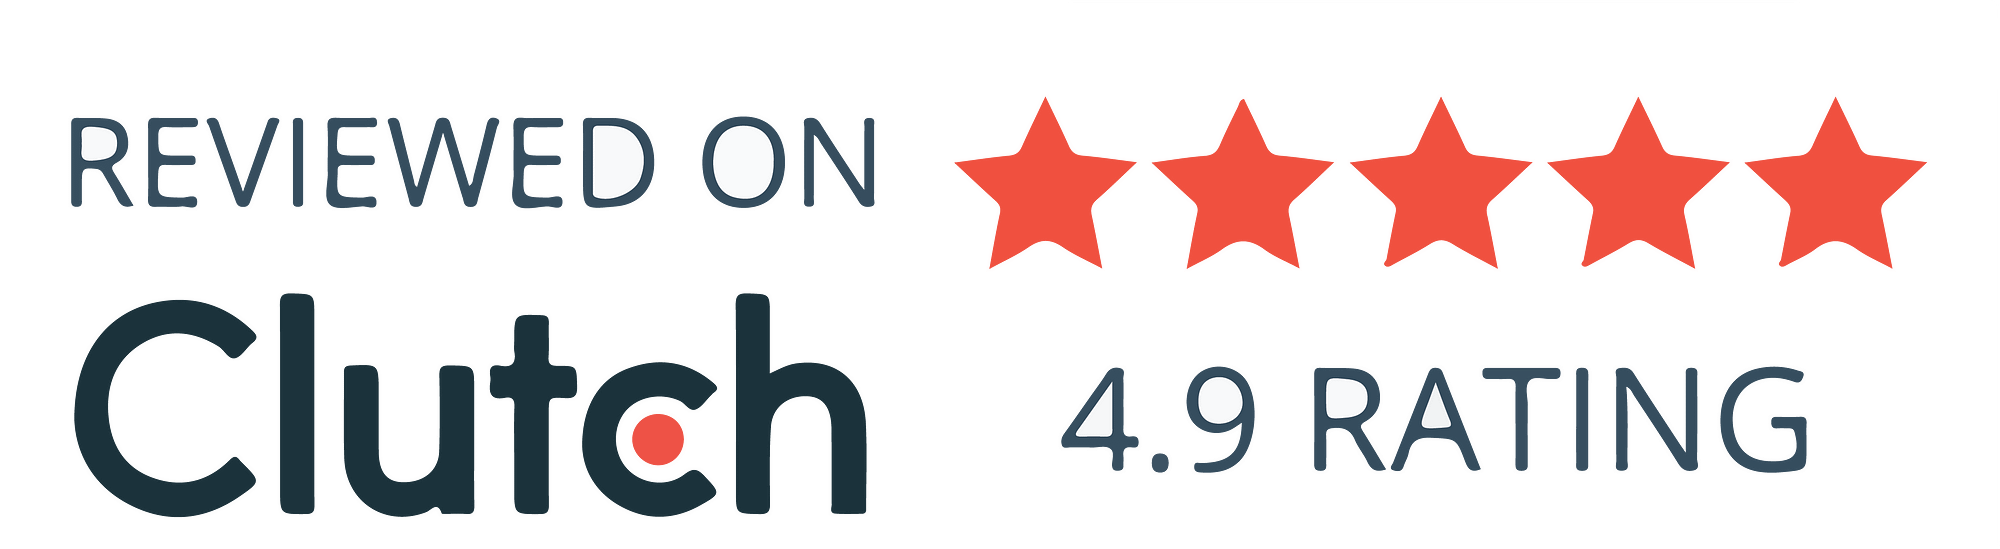 Clutch Review - Home